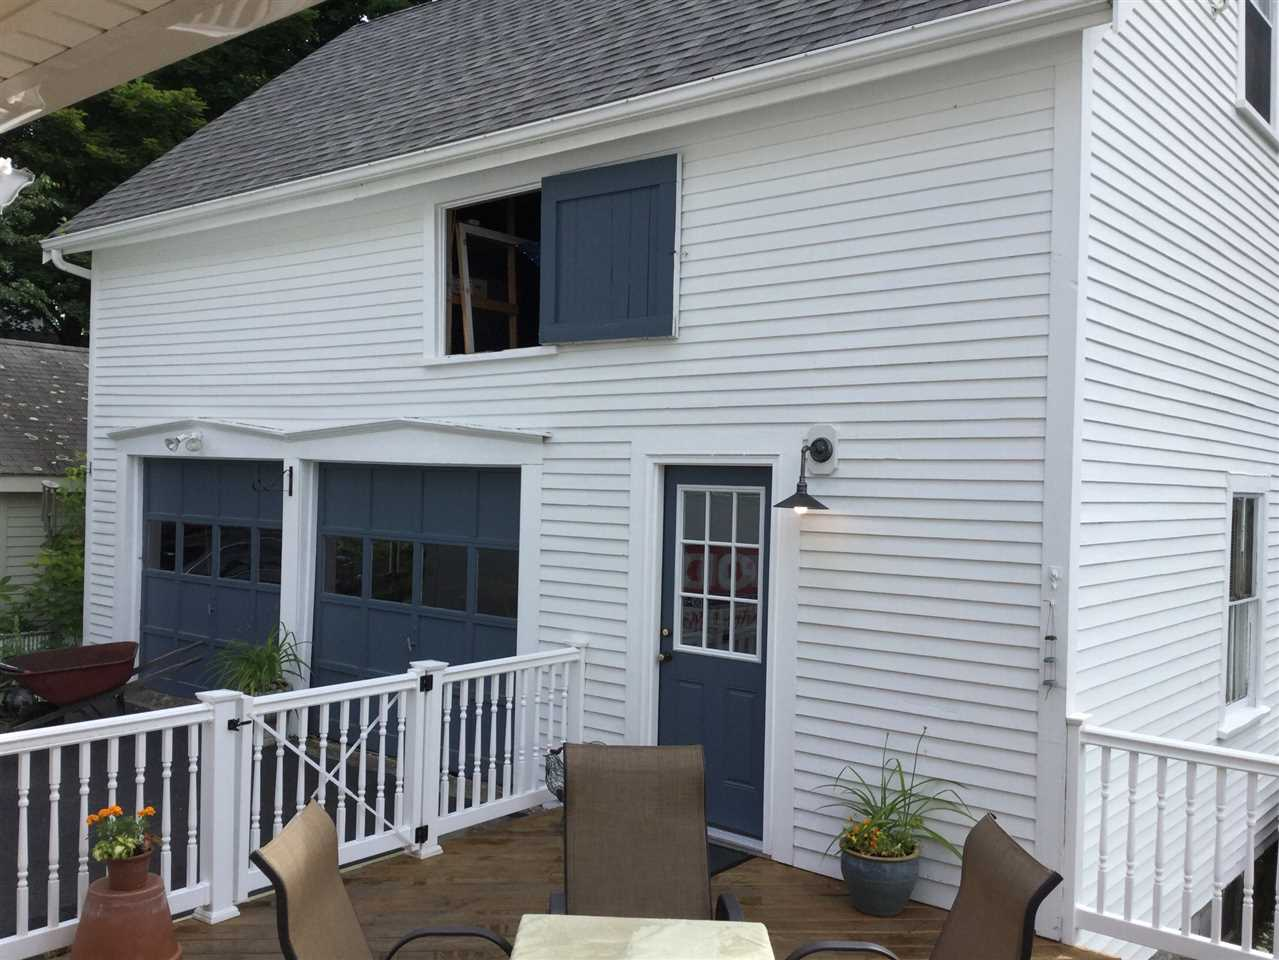 204 Wibird Street, Portsmouth, NH 03801 - Portsmouth Real Estate ...